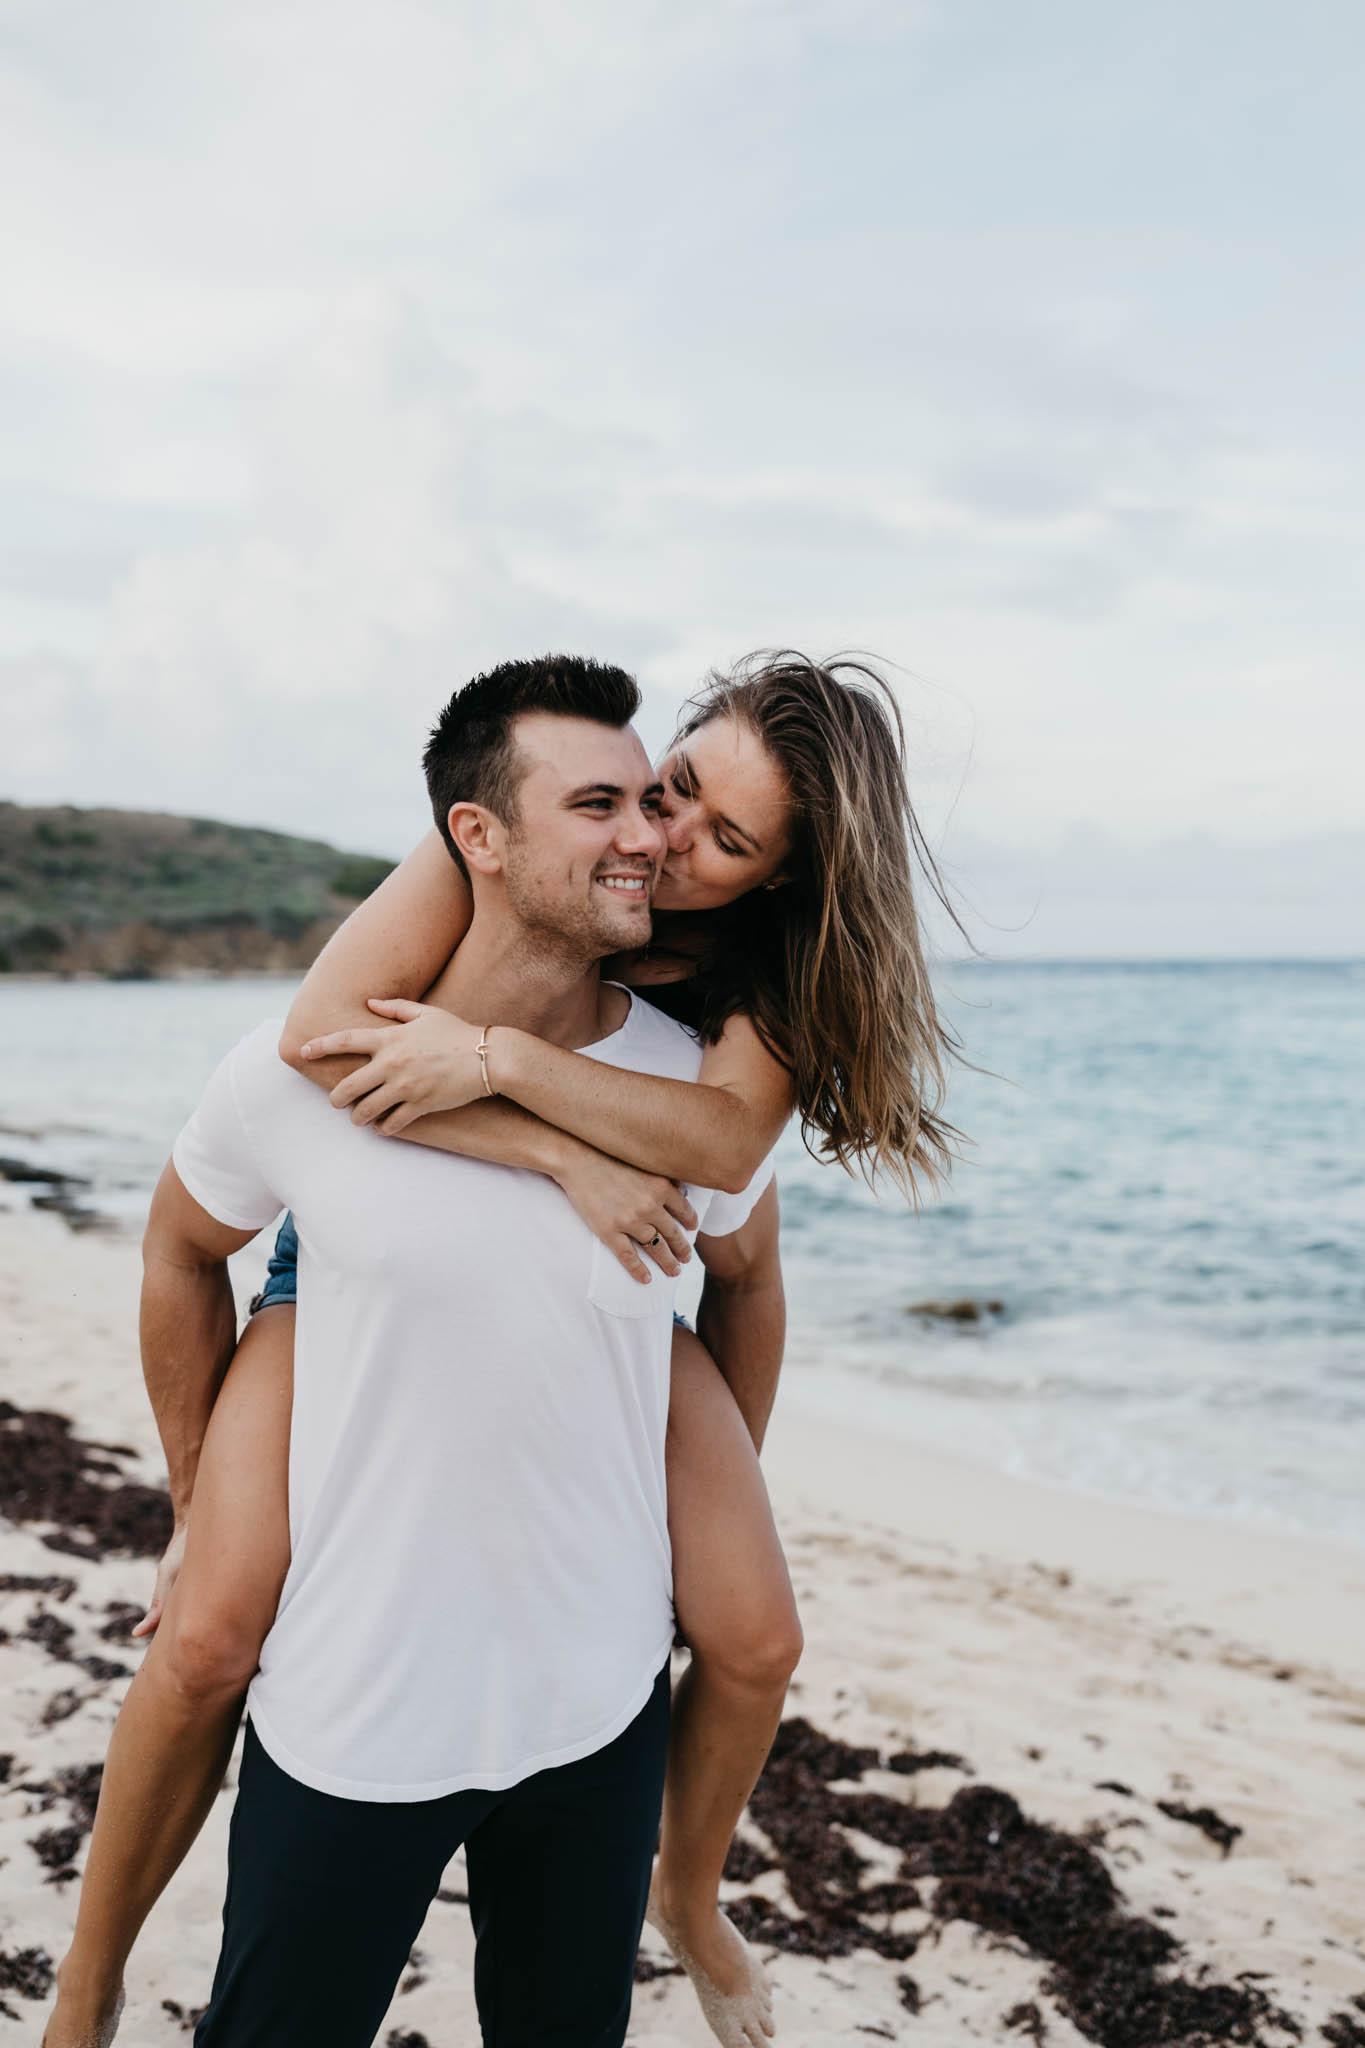 Hiking Couples Proposal on the Beach on St. Croix in the Virgin Islands | Cruz Bay | Caribbean Wedding | St. Croix Wedding Photographer | St. John Wedding | Tropical Honeymoon | Destination Honeymoon | Beach Engagement Photos | Charlotte Amalie | Love and Wild Hearts | Caribbean Sea | Destination Wedding Photographer | Traveling Photographer | Hike to Elope | Rad Couples | St. Thomas | Island Vibes | Adventurous Island Elopement | Virgin Islands | Meredith Zimmerman Photography